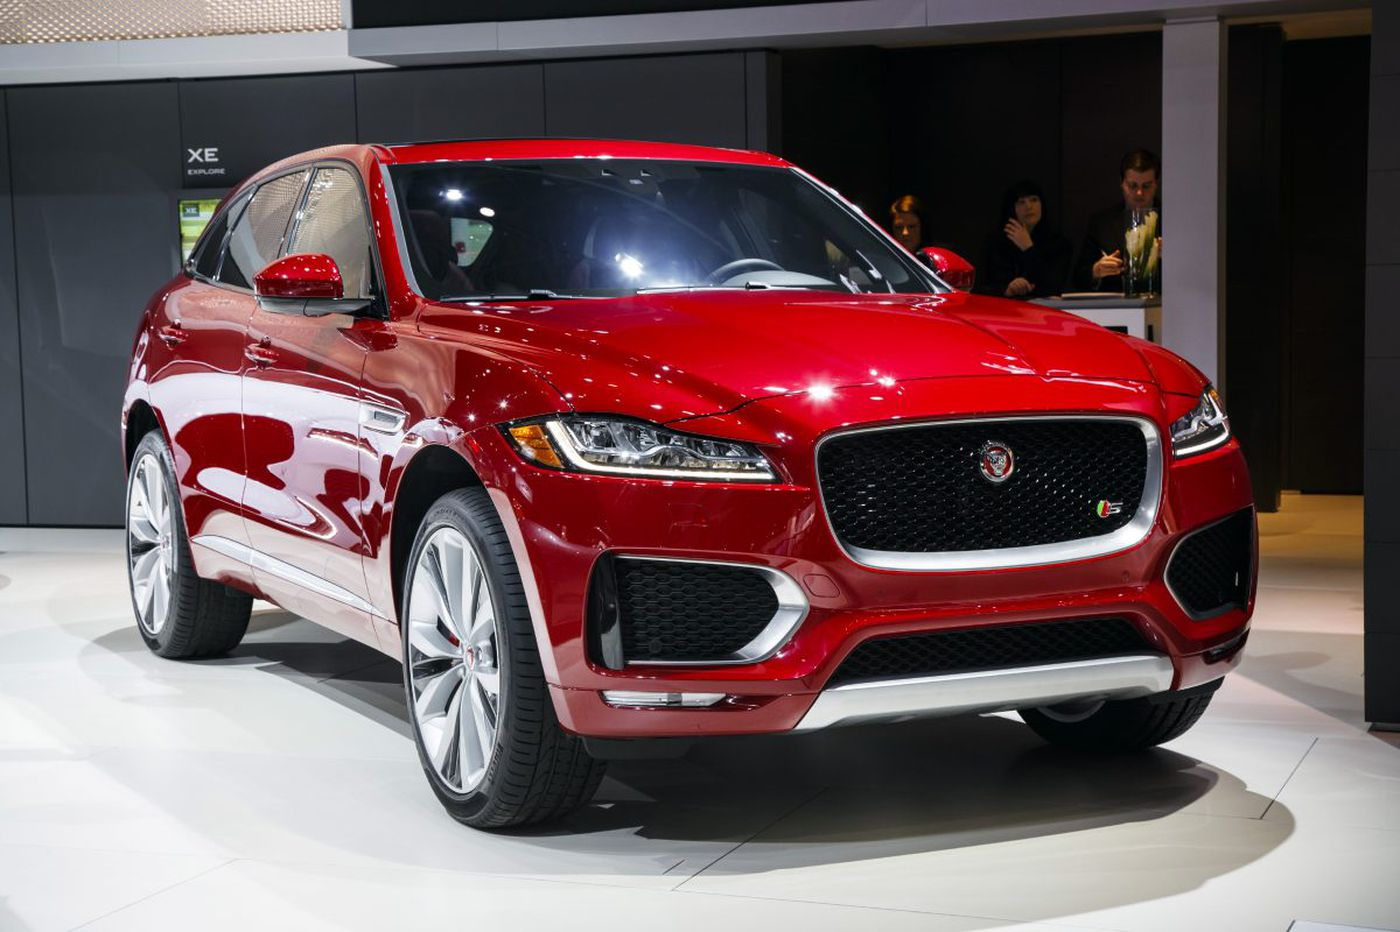 Jaguar F Pace puts some teeth in the crossover